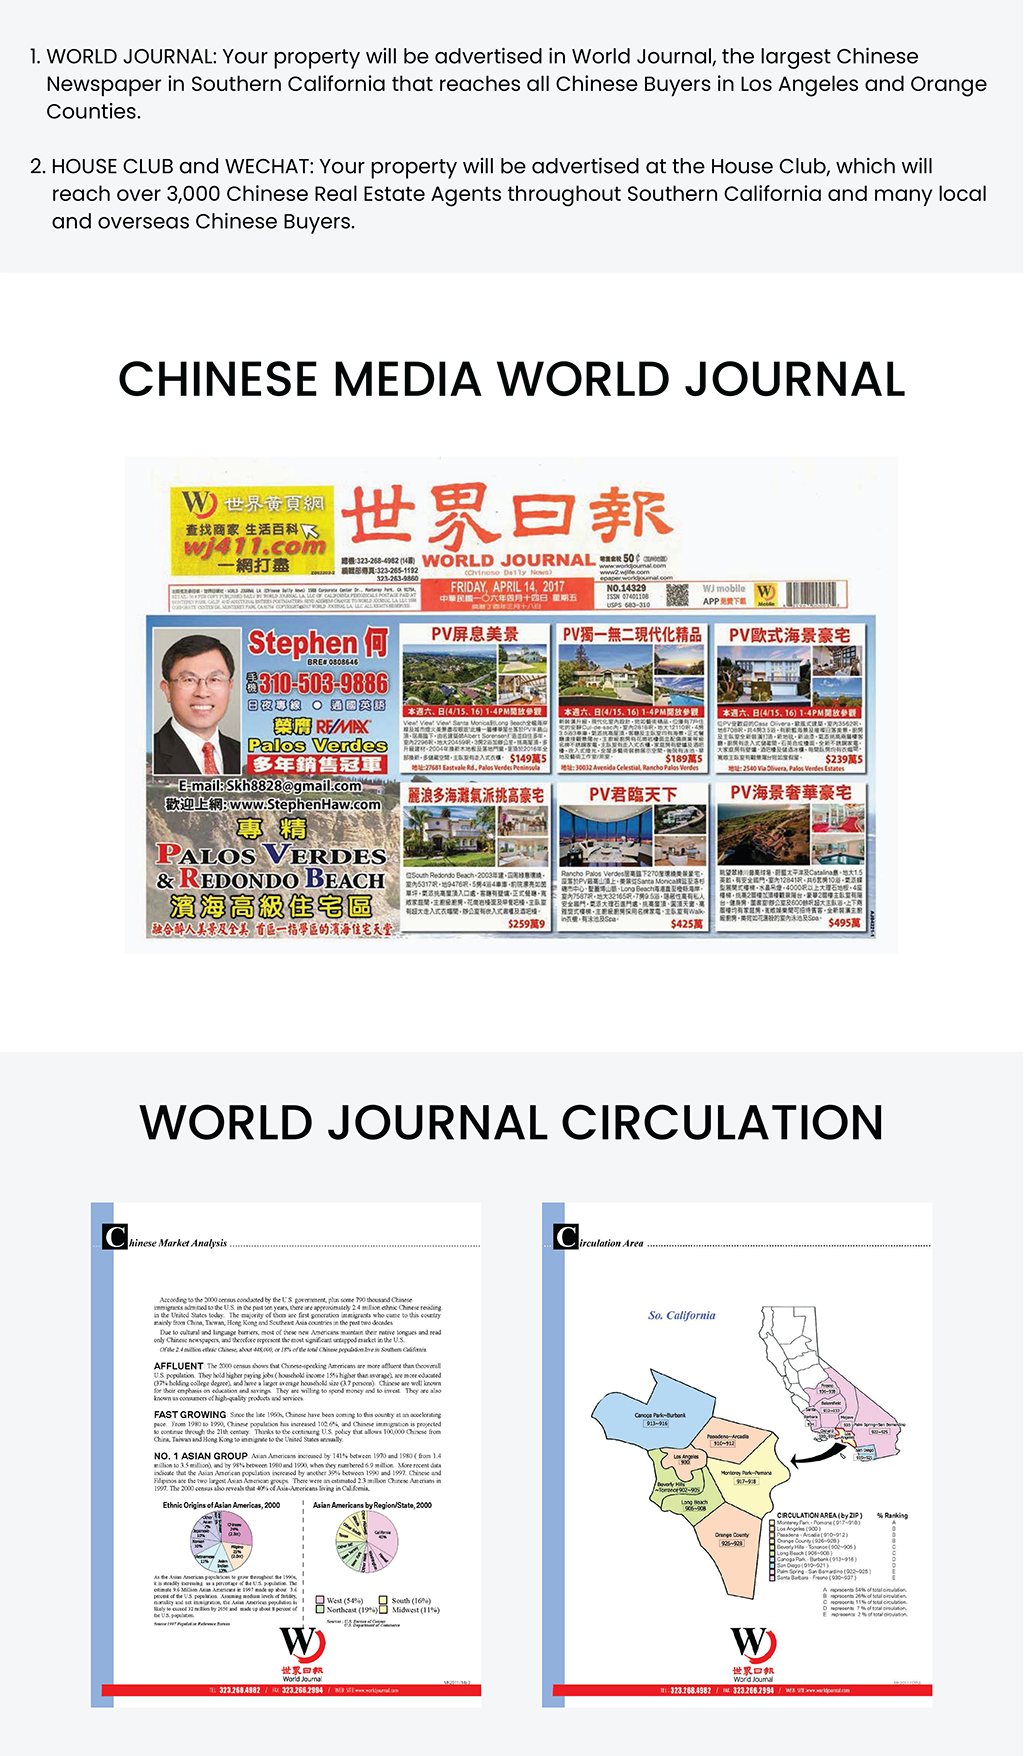 WORLD JOURNAL: Your property will be advertised in World Journal, the largest Chinese Newspaper in Southern California that reaches all Chinese Buyers in Los Angeles and Orange Counties. HOUSE CLUB and WECHAT: Your property will be advertised at the House Club, which will reach over 3,000 Chinese Real Estate Agents throughout Southern California and many local and overseas Chinese Buyers. Chinese Media World Journal.